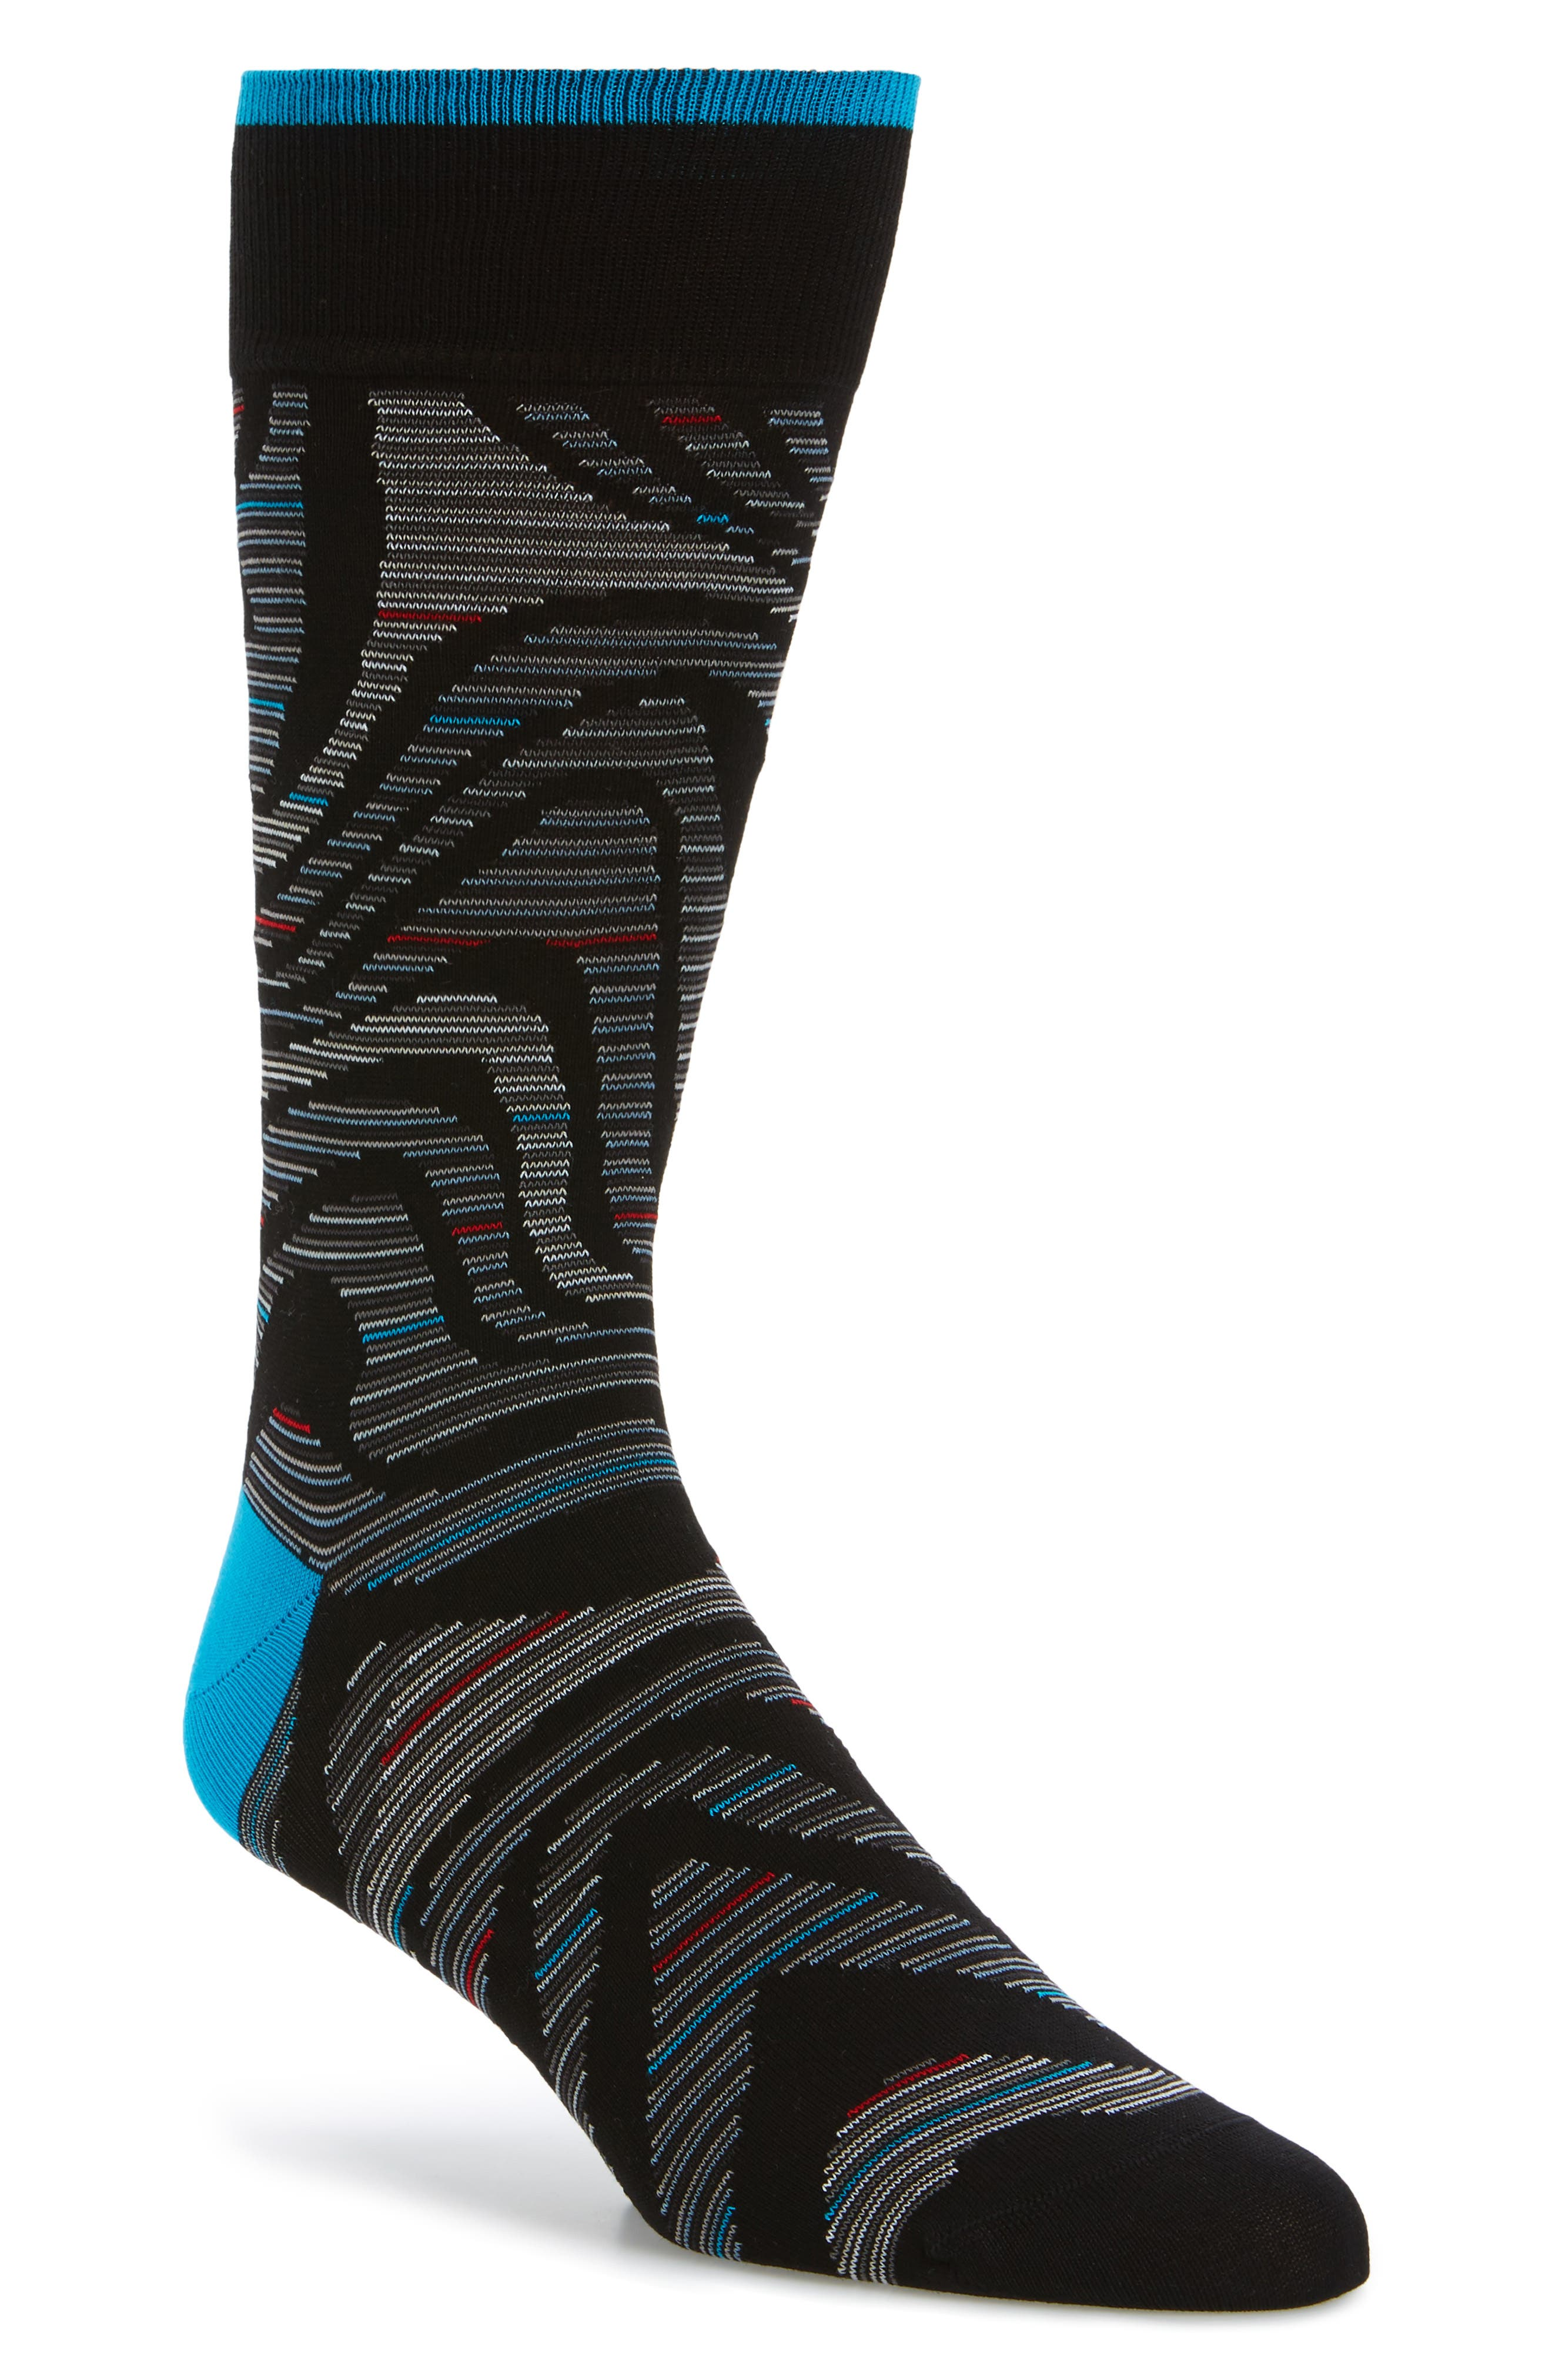 Alternate Image 1 Selected - Bugatchi Pattern Socks